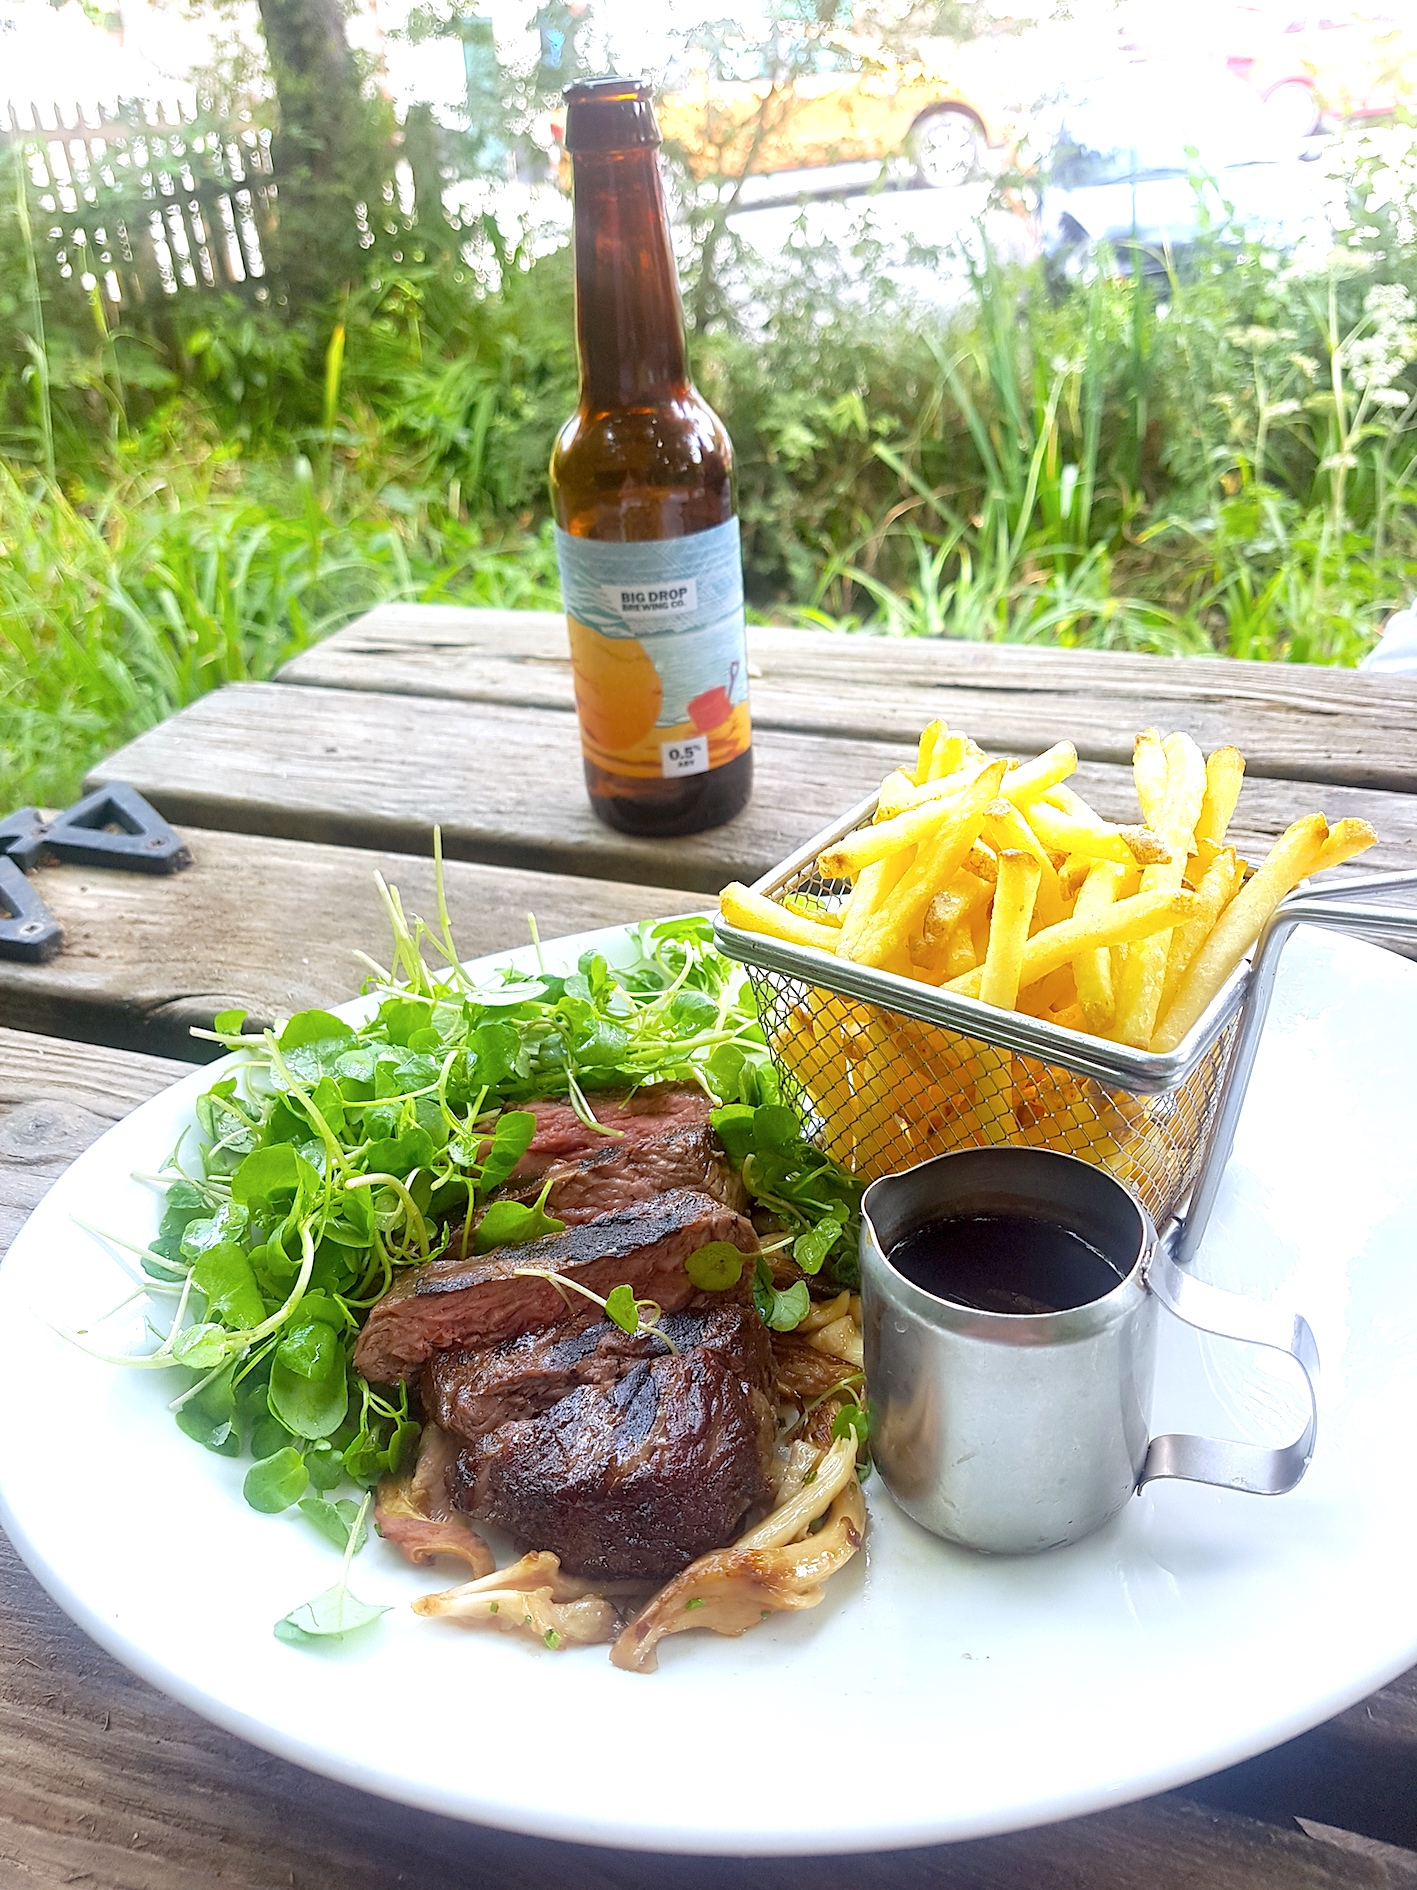 Good food has become an increasingly important part of modern pub culture, especially as alcohol prices rise and something else needs to be drawing customers through the door.